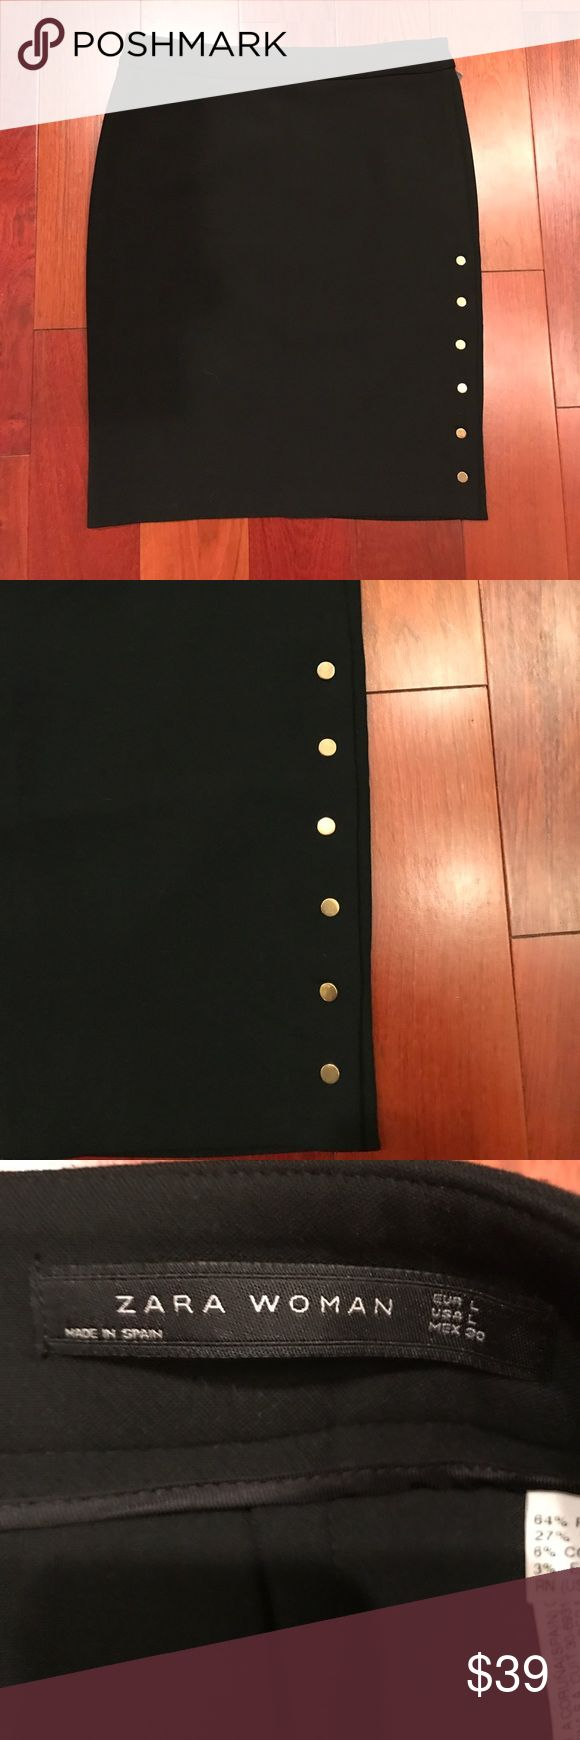 Zara Black Button Skirt Never worn Zara Women size Large black skirt. This skirt is super cute with gold snaps up the left side for detail. The skirt zips up the back. Perfect professional skirt. Zara Skirts